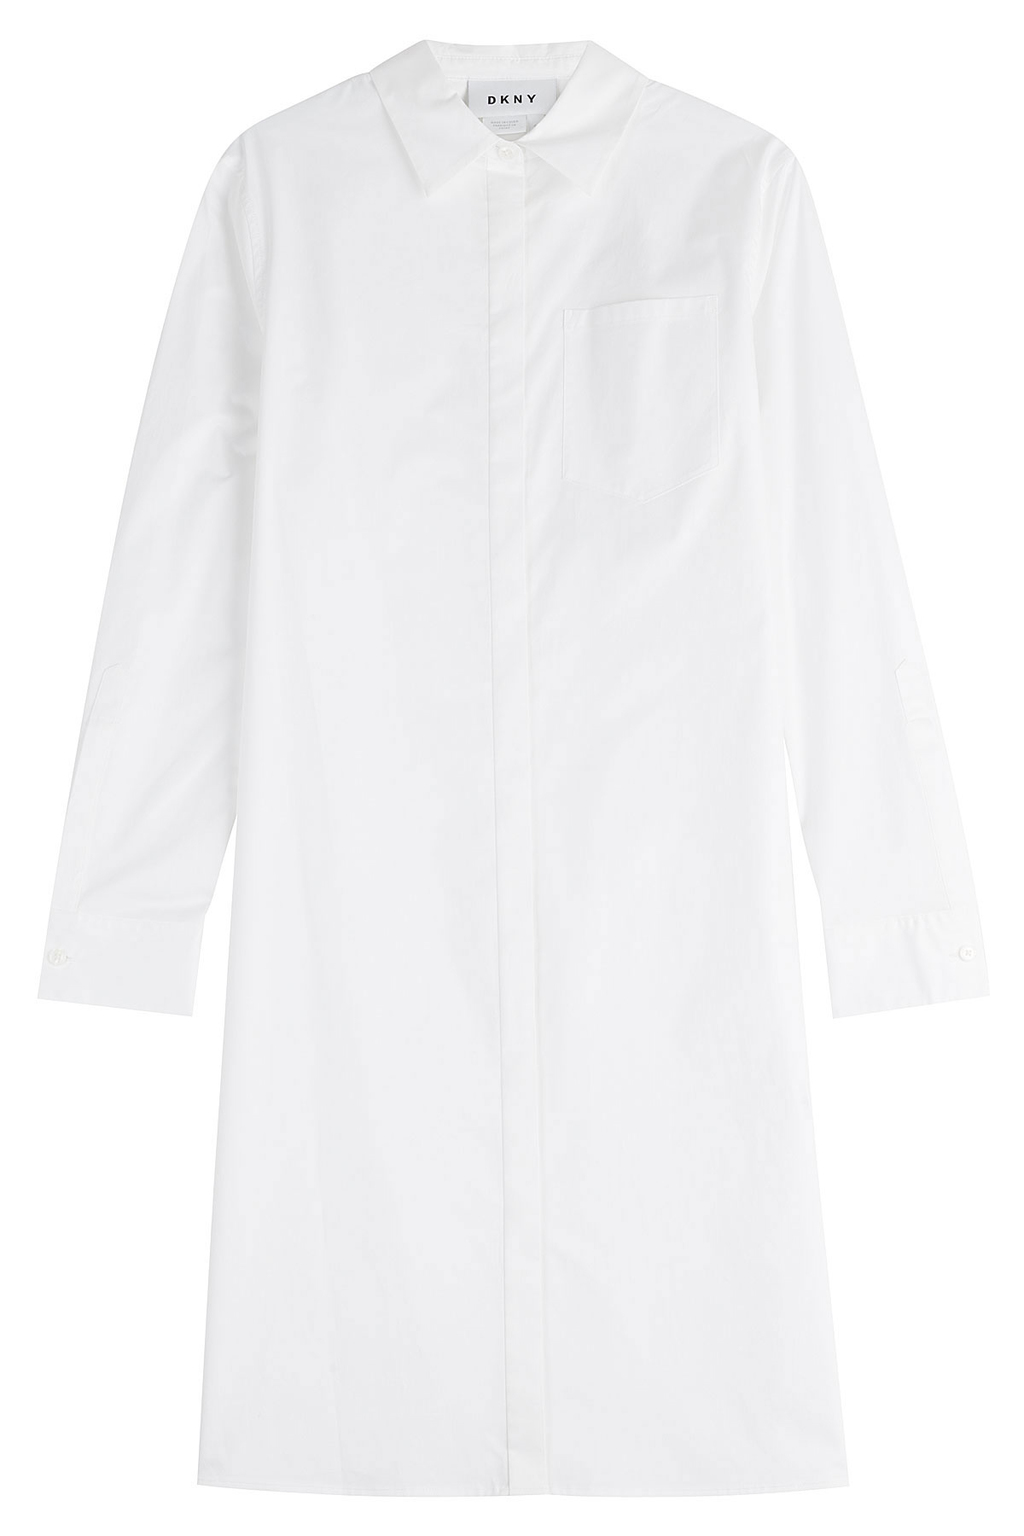 Cotton Shirt Dress - style: shirt; neckline: shirt collar/peter pan/zip with opening; pattern: plain; predominant colour: white; occasions: casual; length: just above the knee; fit: body skimming; fibres: cotton - 100%; sleeve length: long sleeve; sleeve style: standard; texture group: cotton feel fabrics; pattern type: fabric; season: s/s 2016; wardrobe: basic